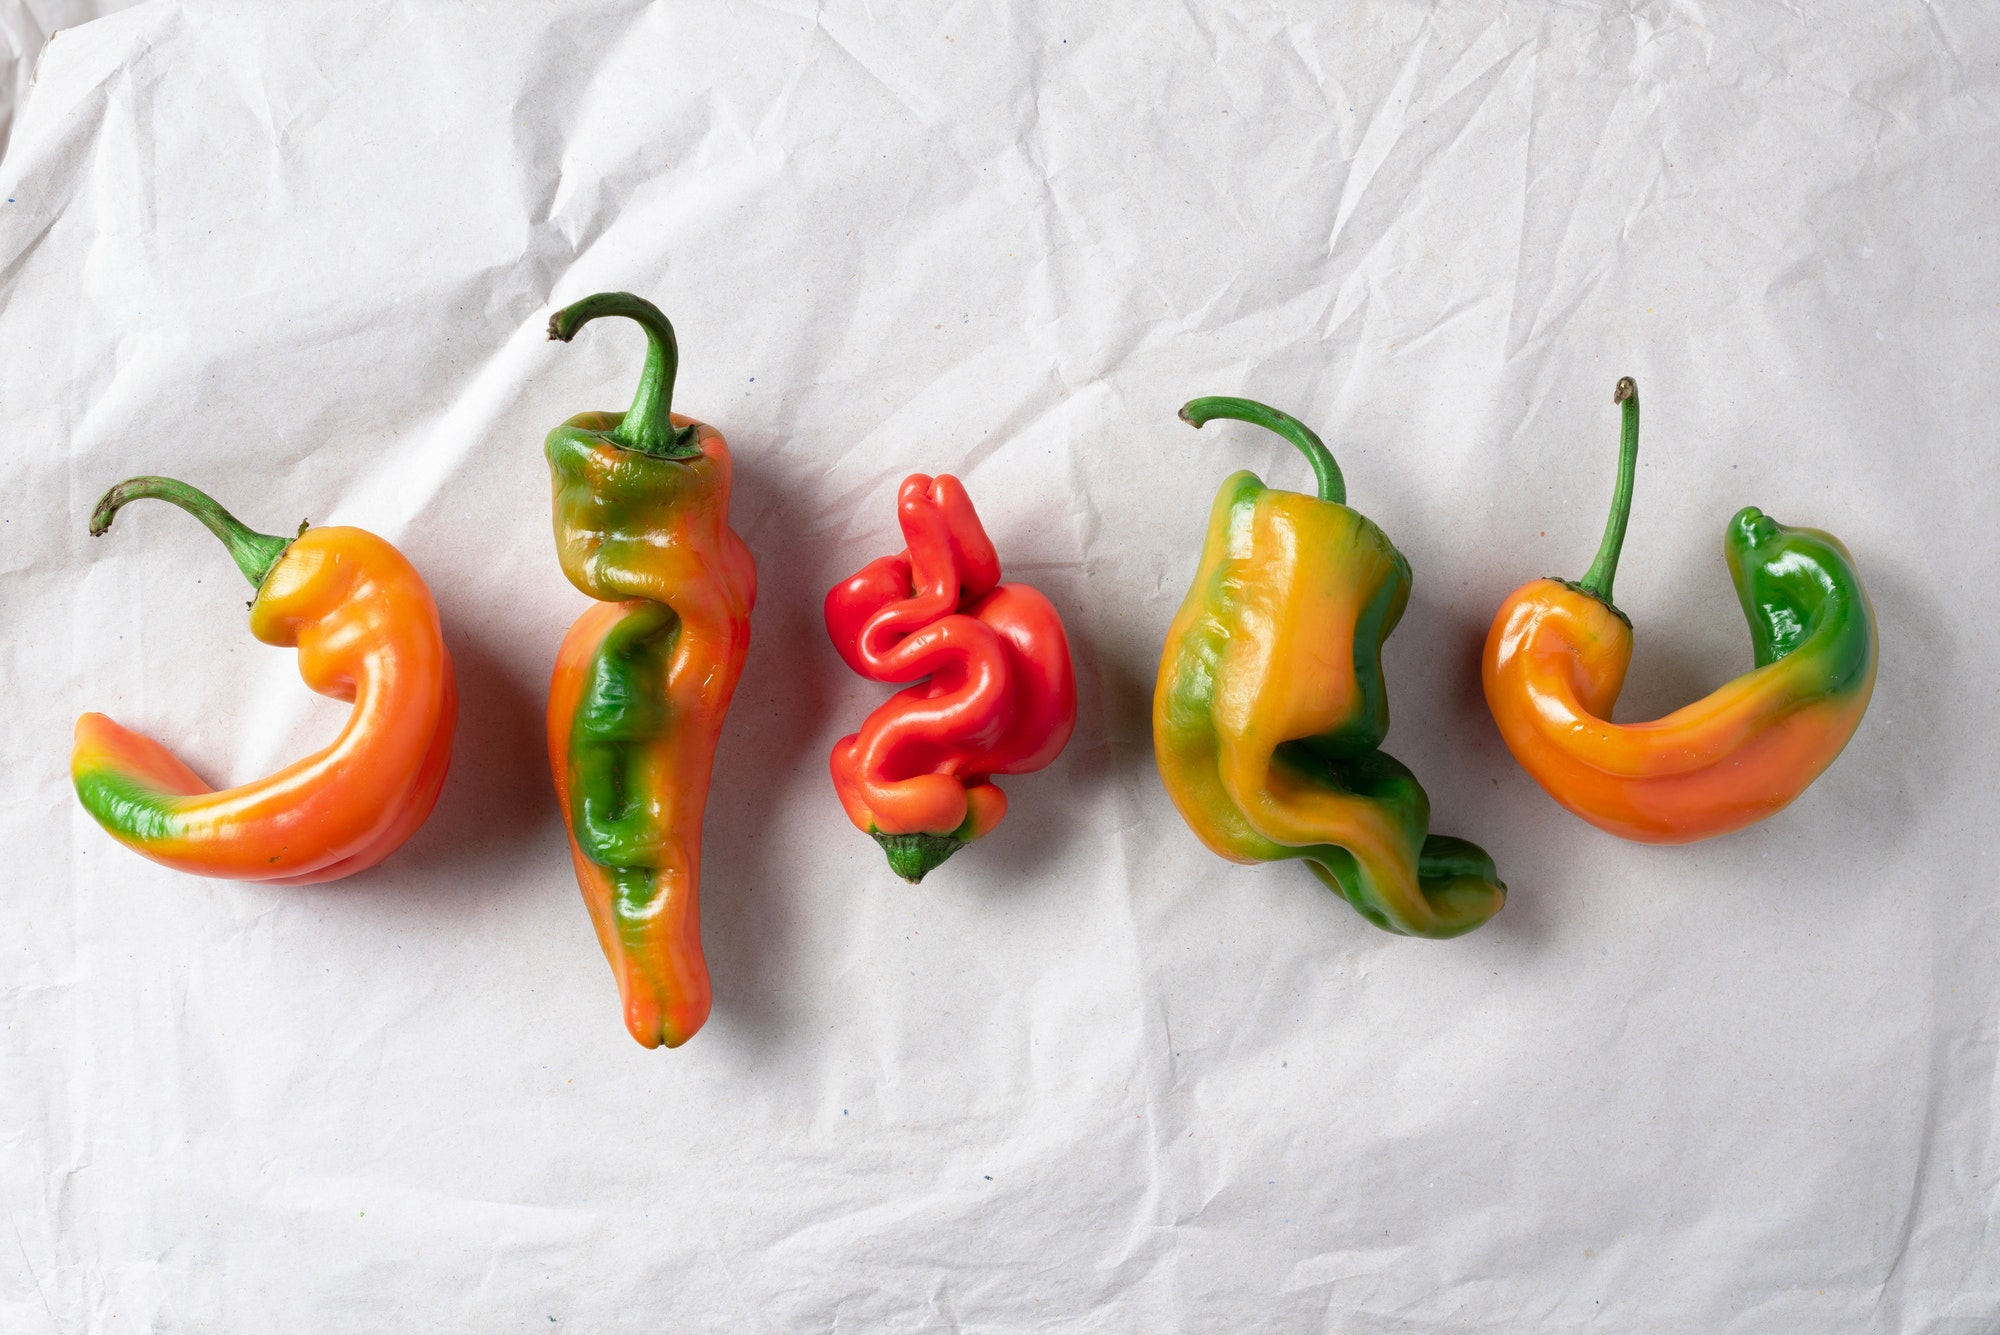 Ugly bell pepper on craft paper background. Concept of zero waste production. Top view. Copy space